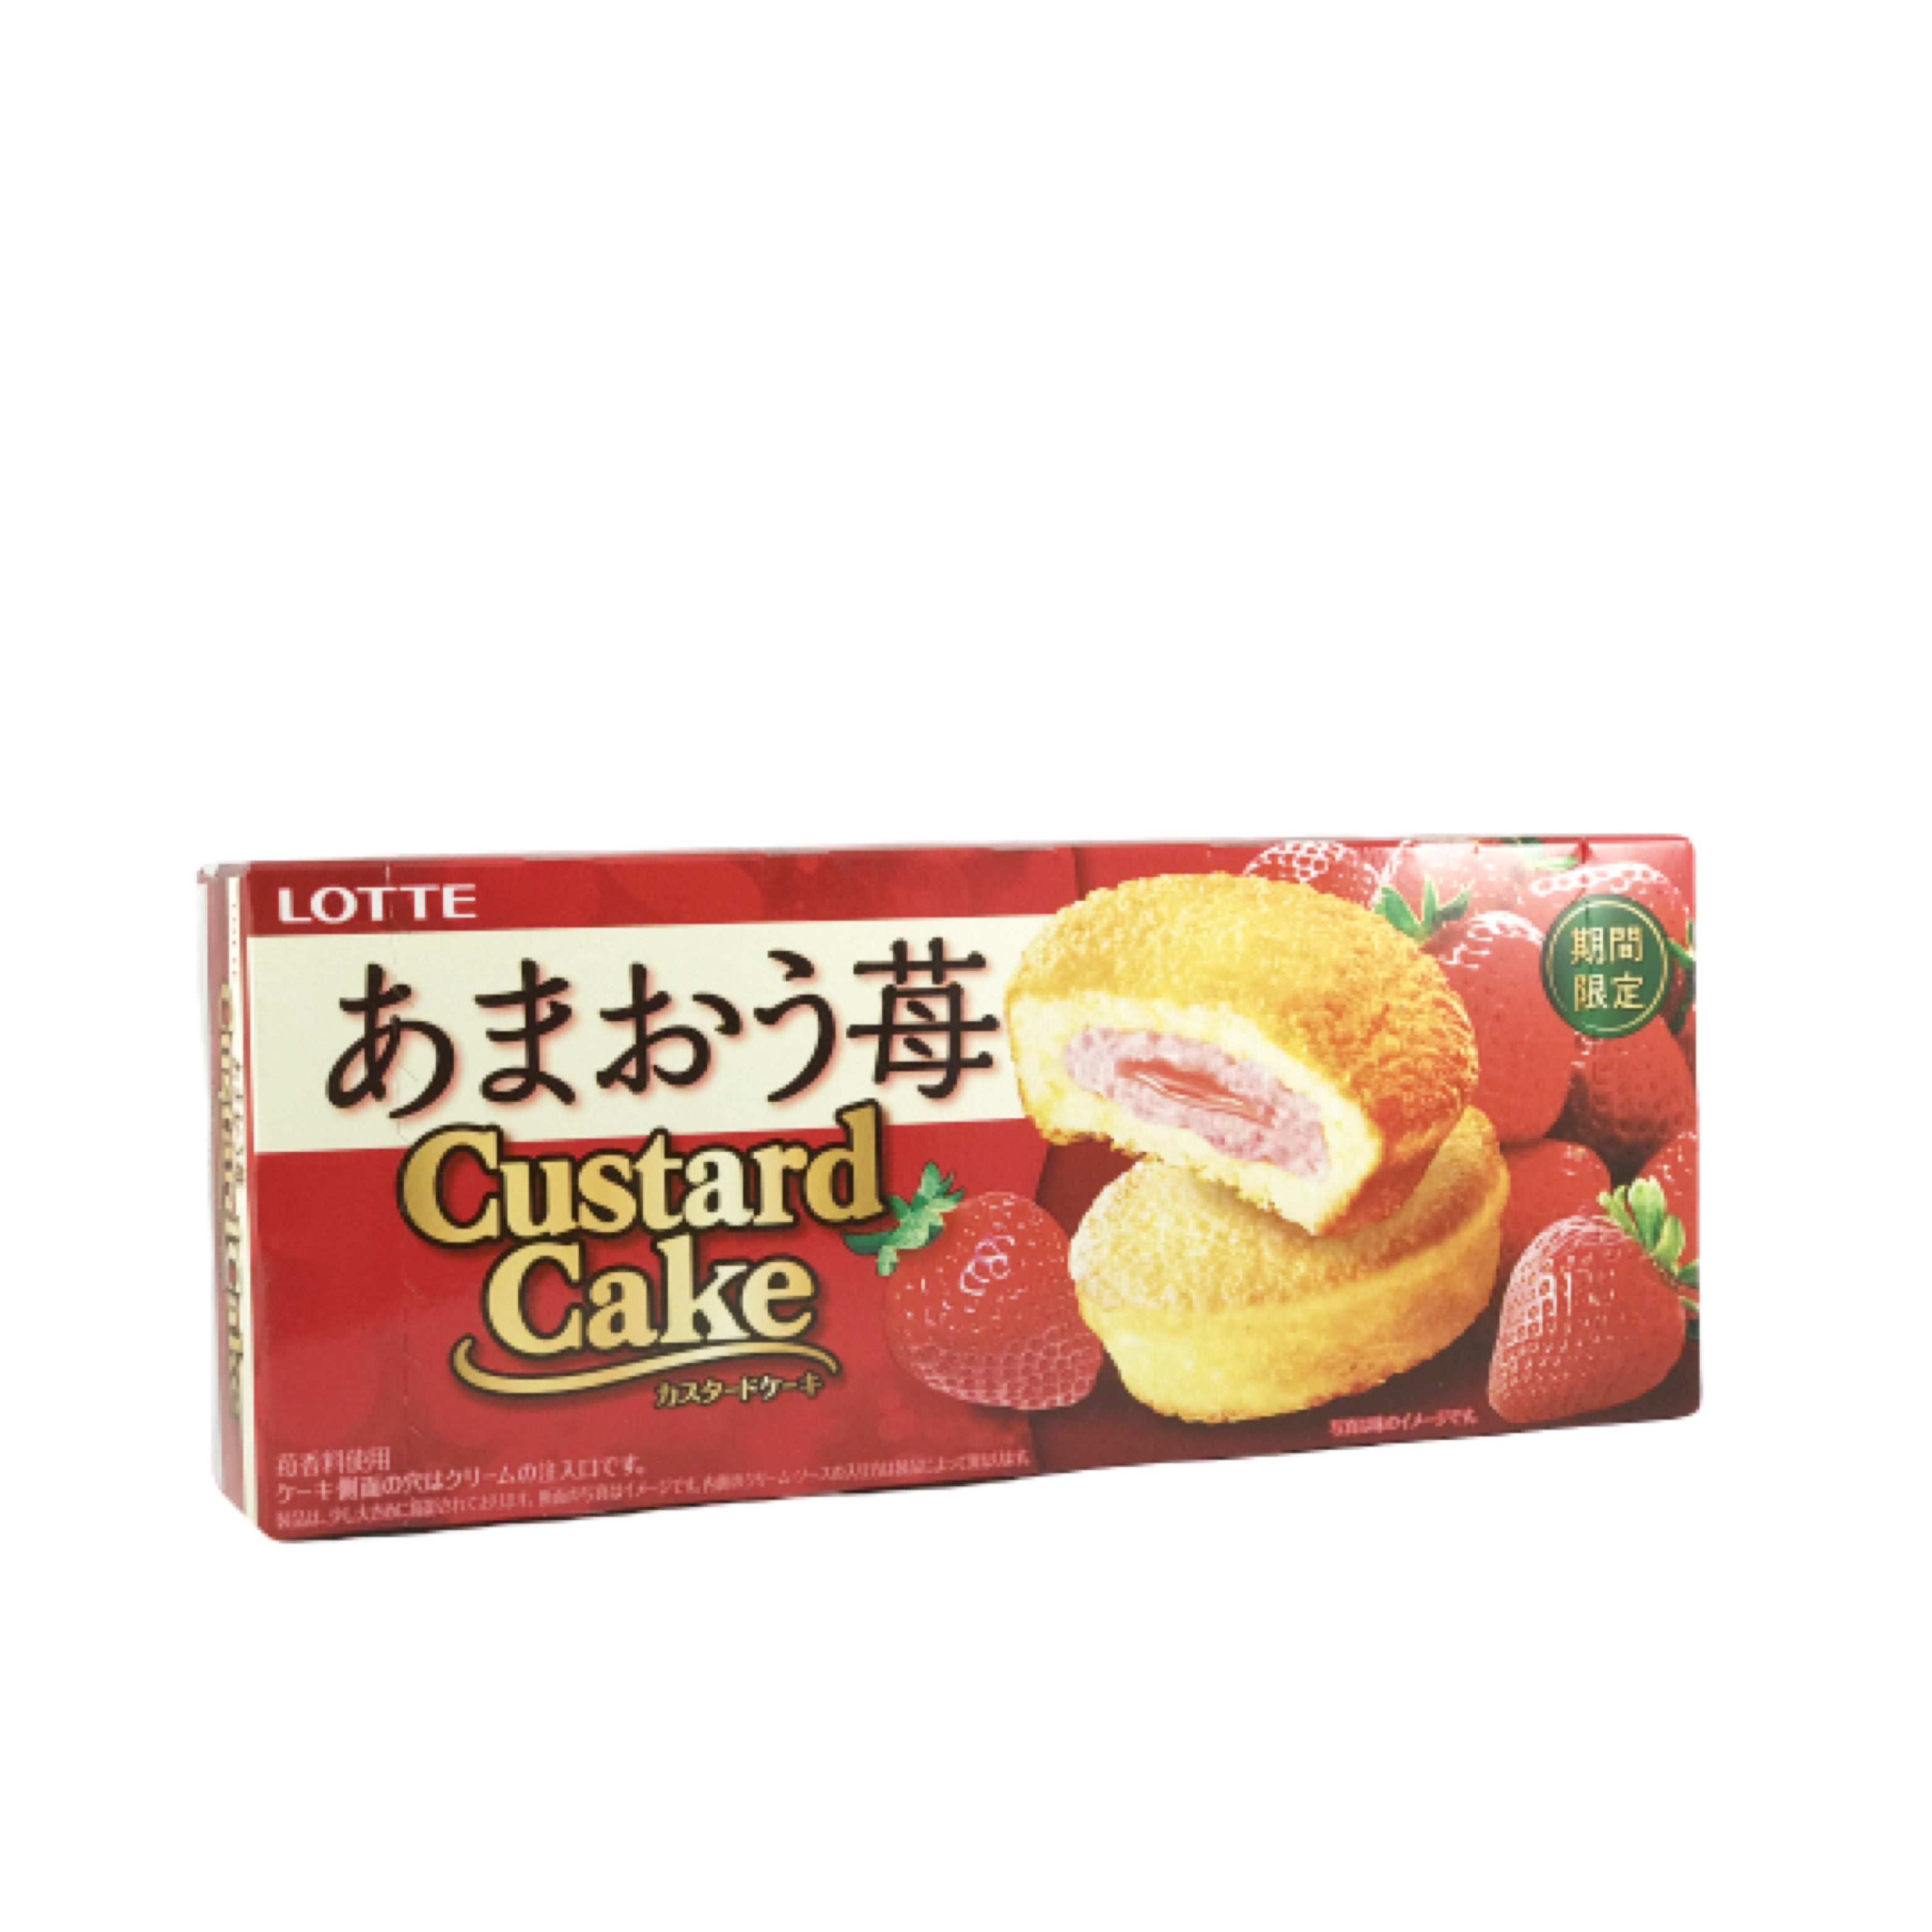 Lotte Strawberry Custar Cake